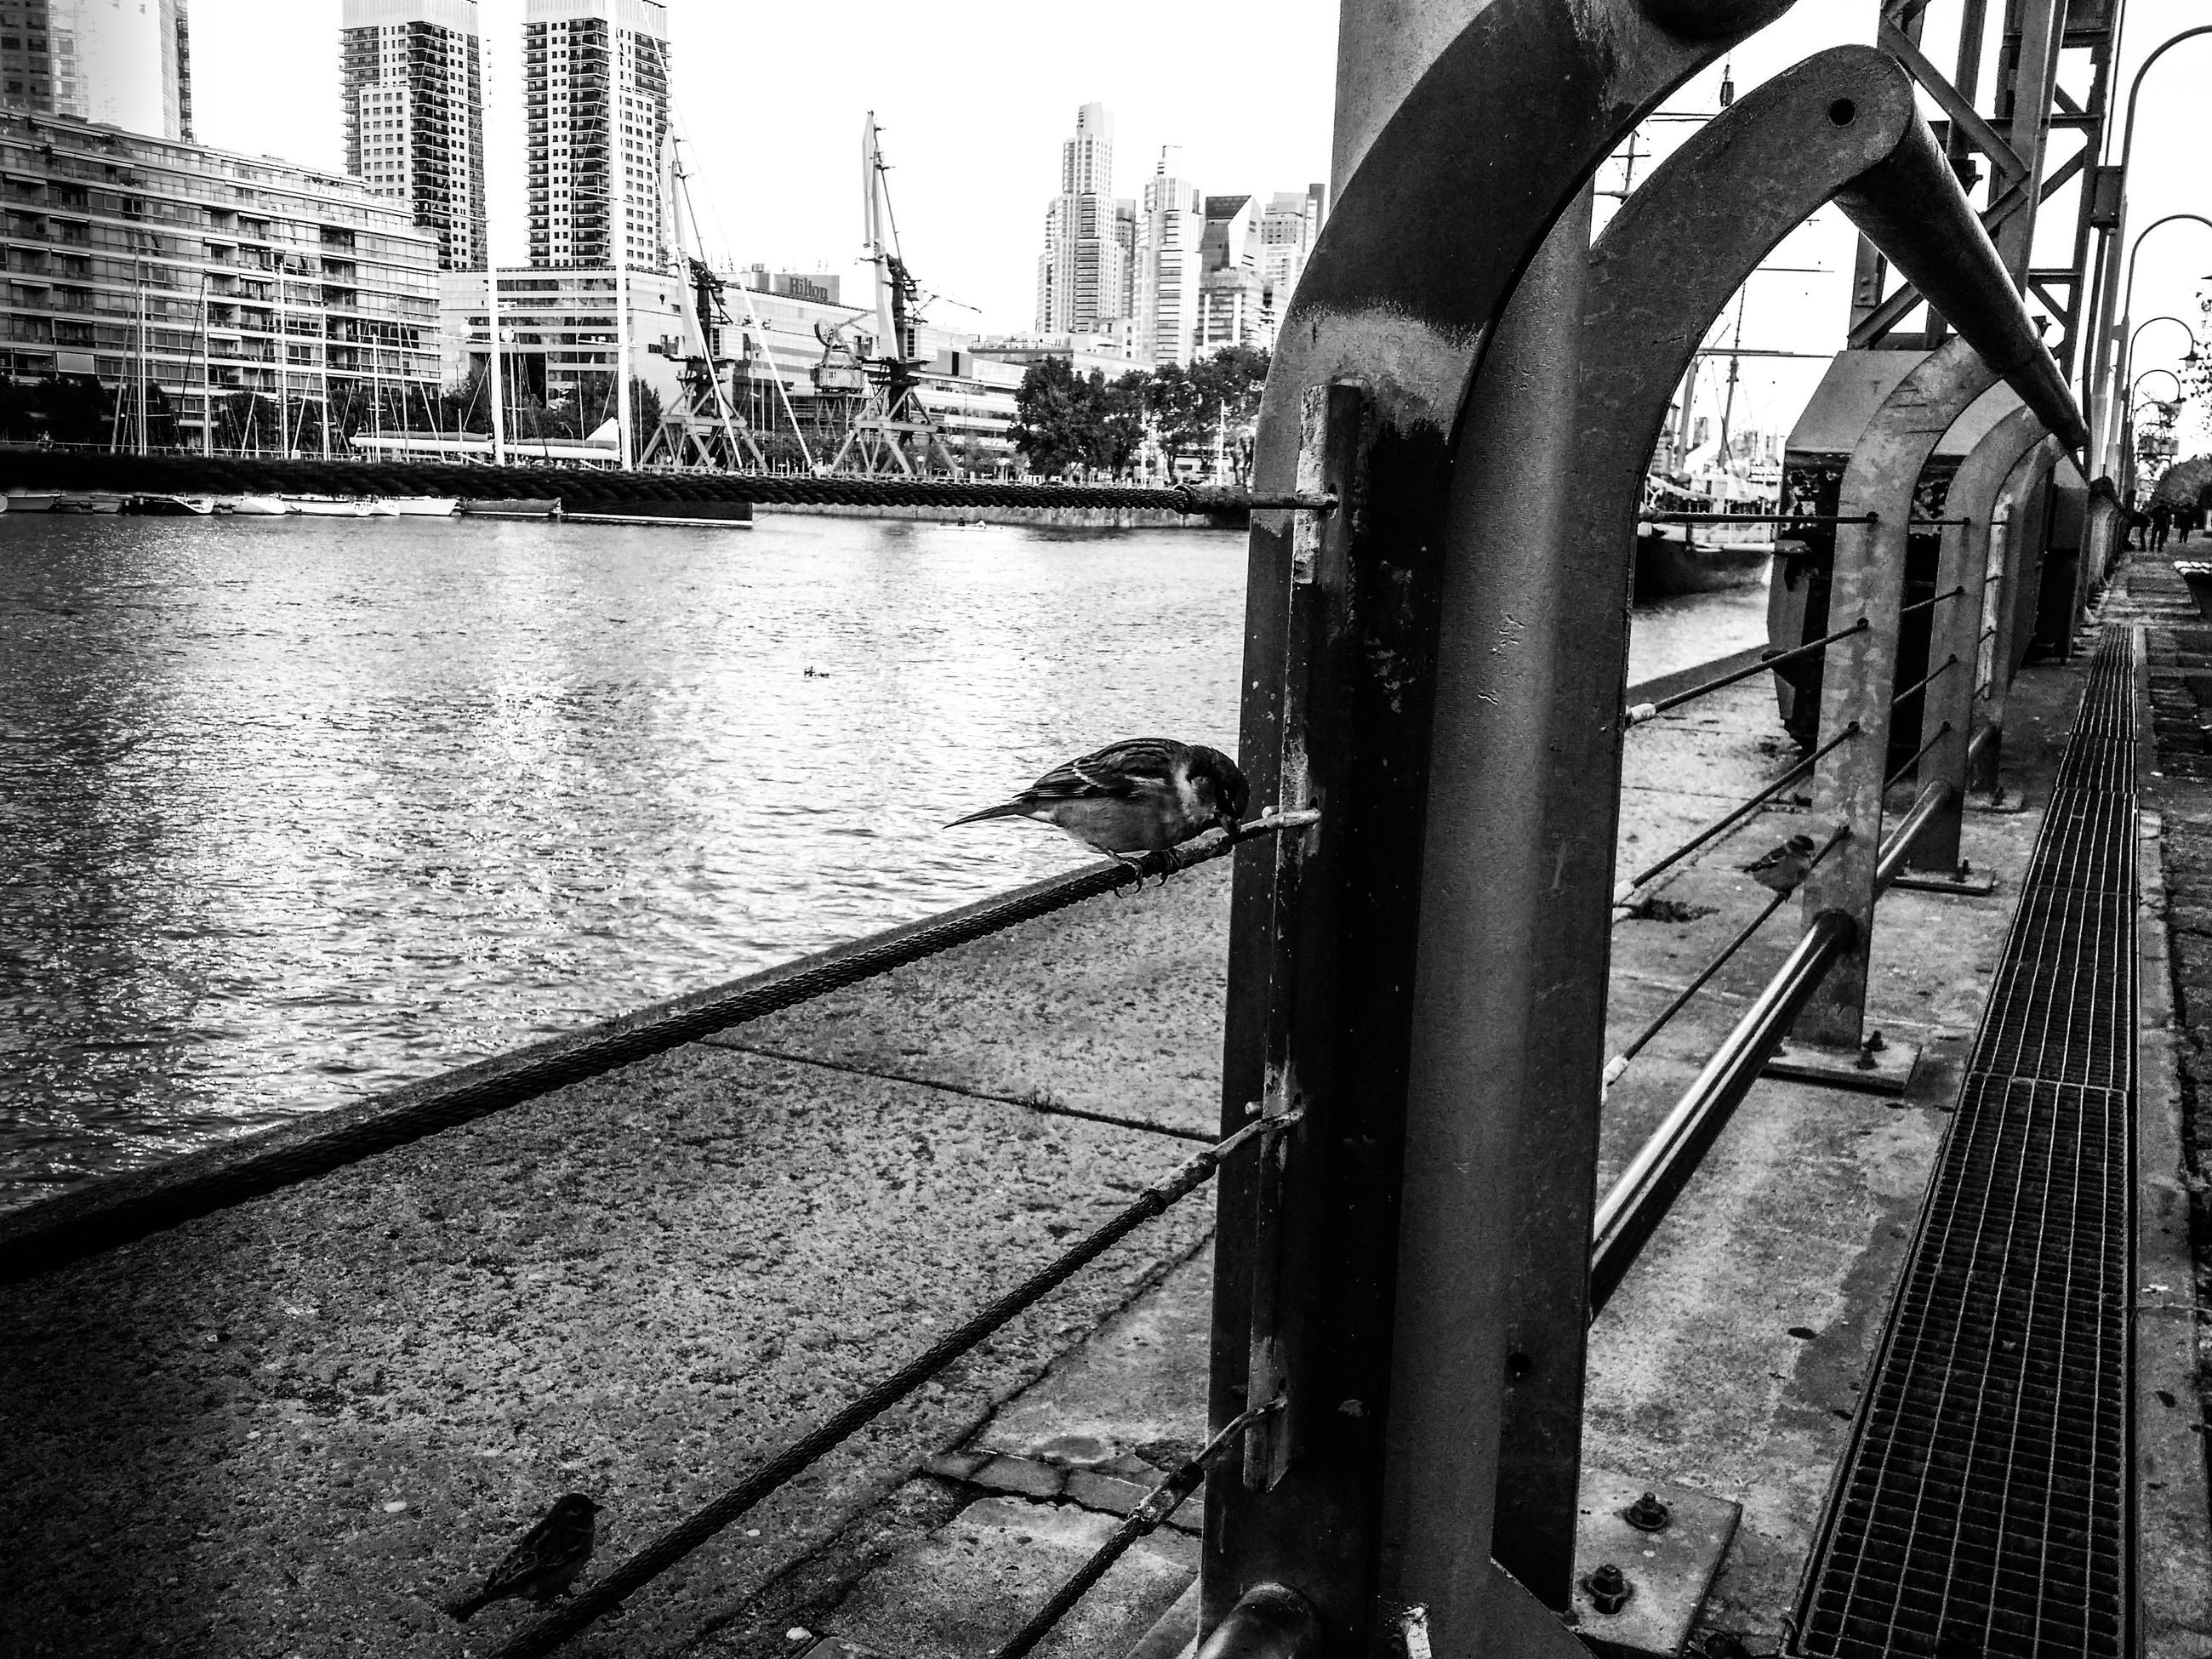 water, architecture, built structure, building exterior, river, city, bridge - man made structure, connection, transportation, metal, railing, canal, mode of transport, cityscape, day, nautical vessel, bridge, outdoors, engineering, no people